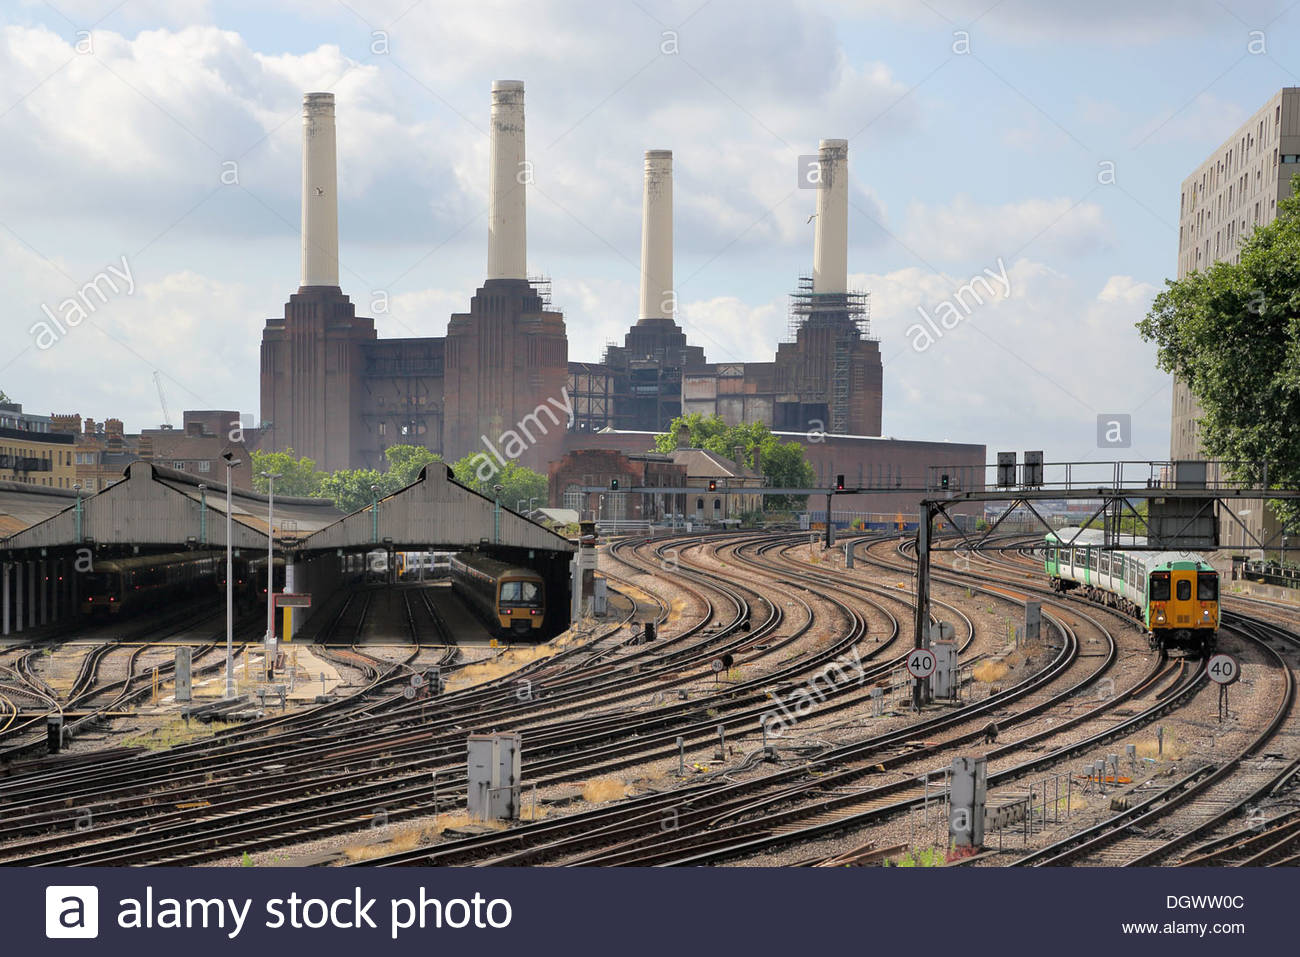 Battersea power station and railway tracks - Stock Image